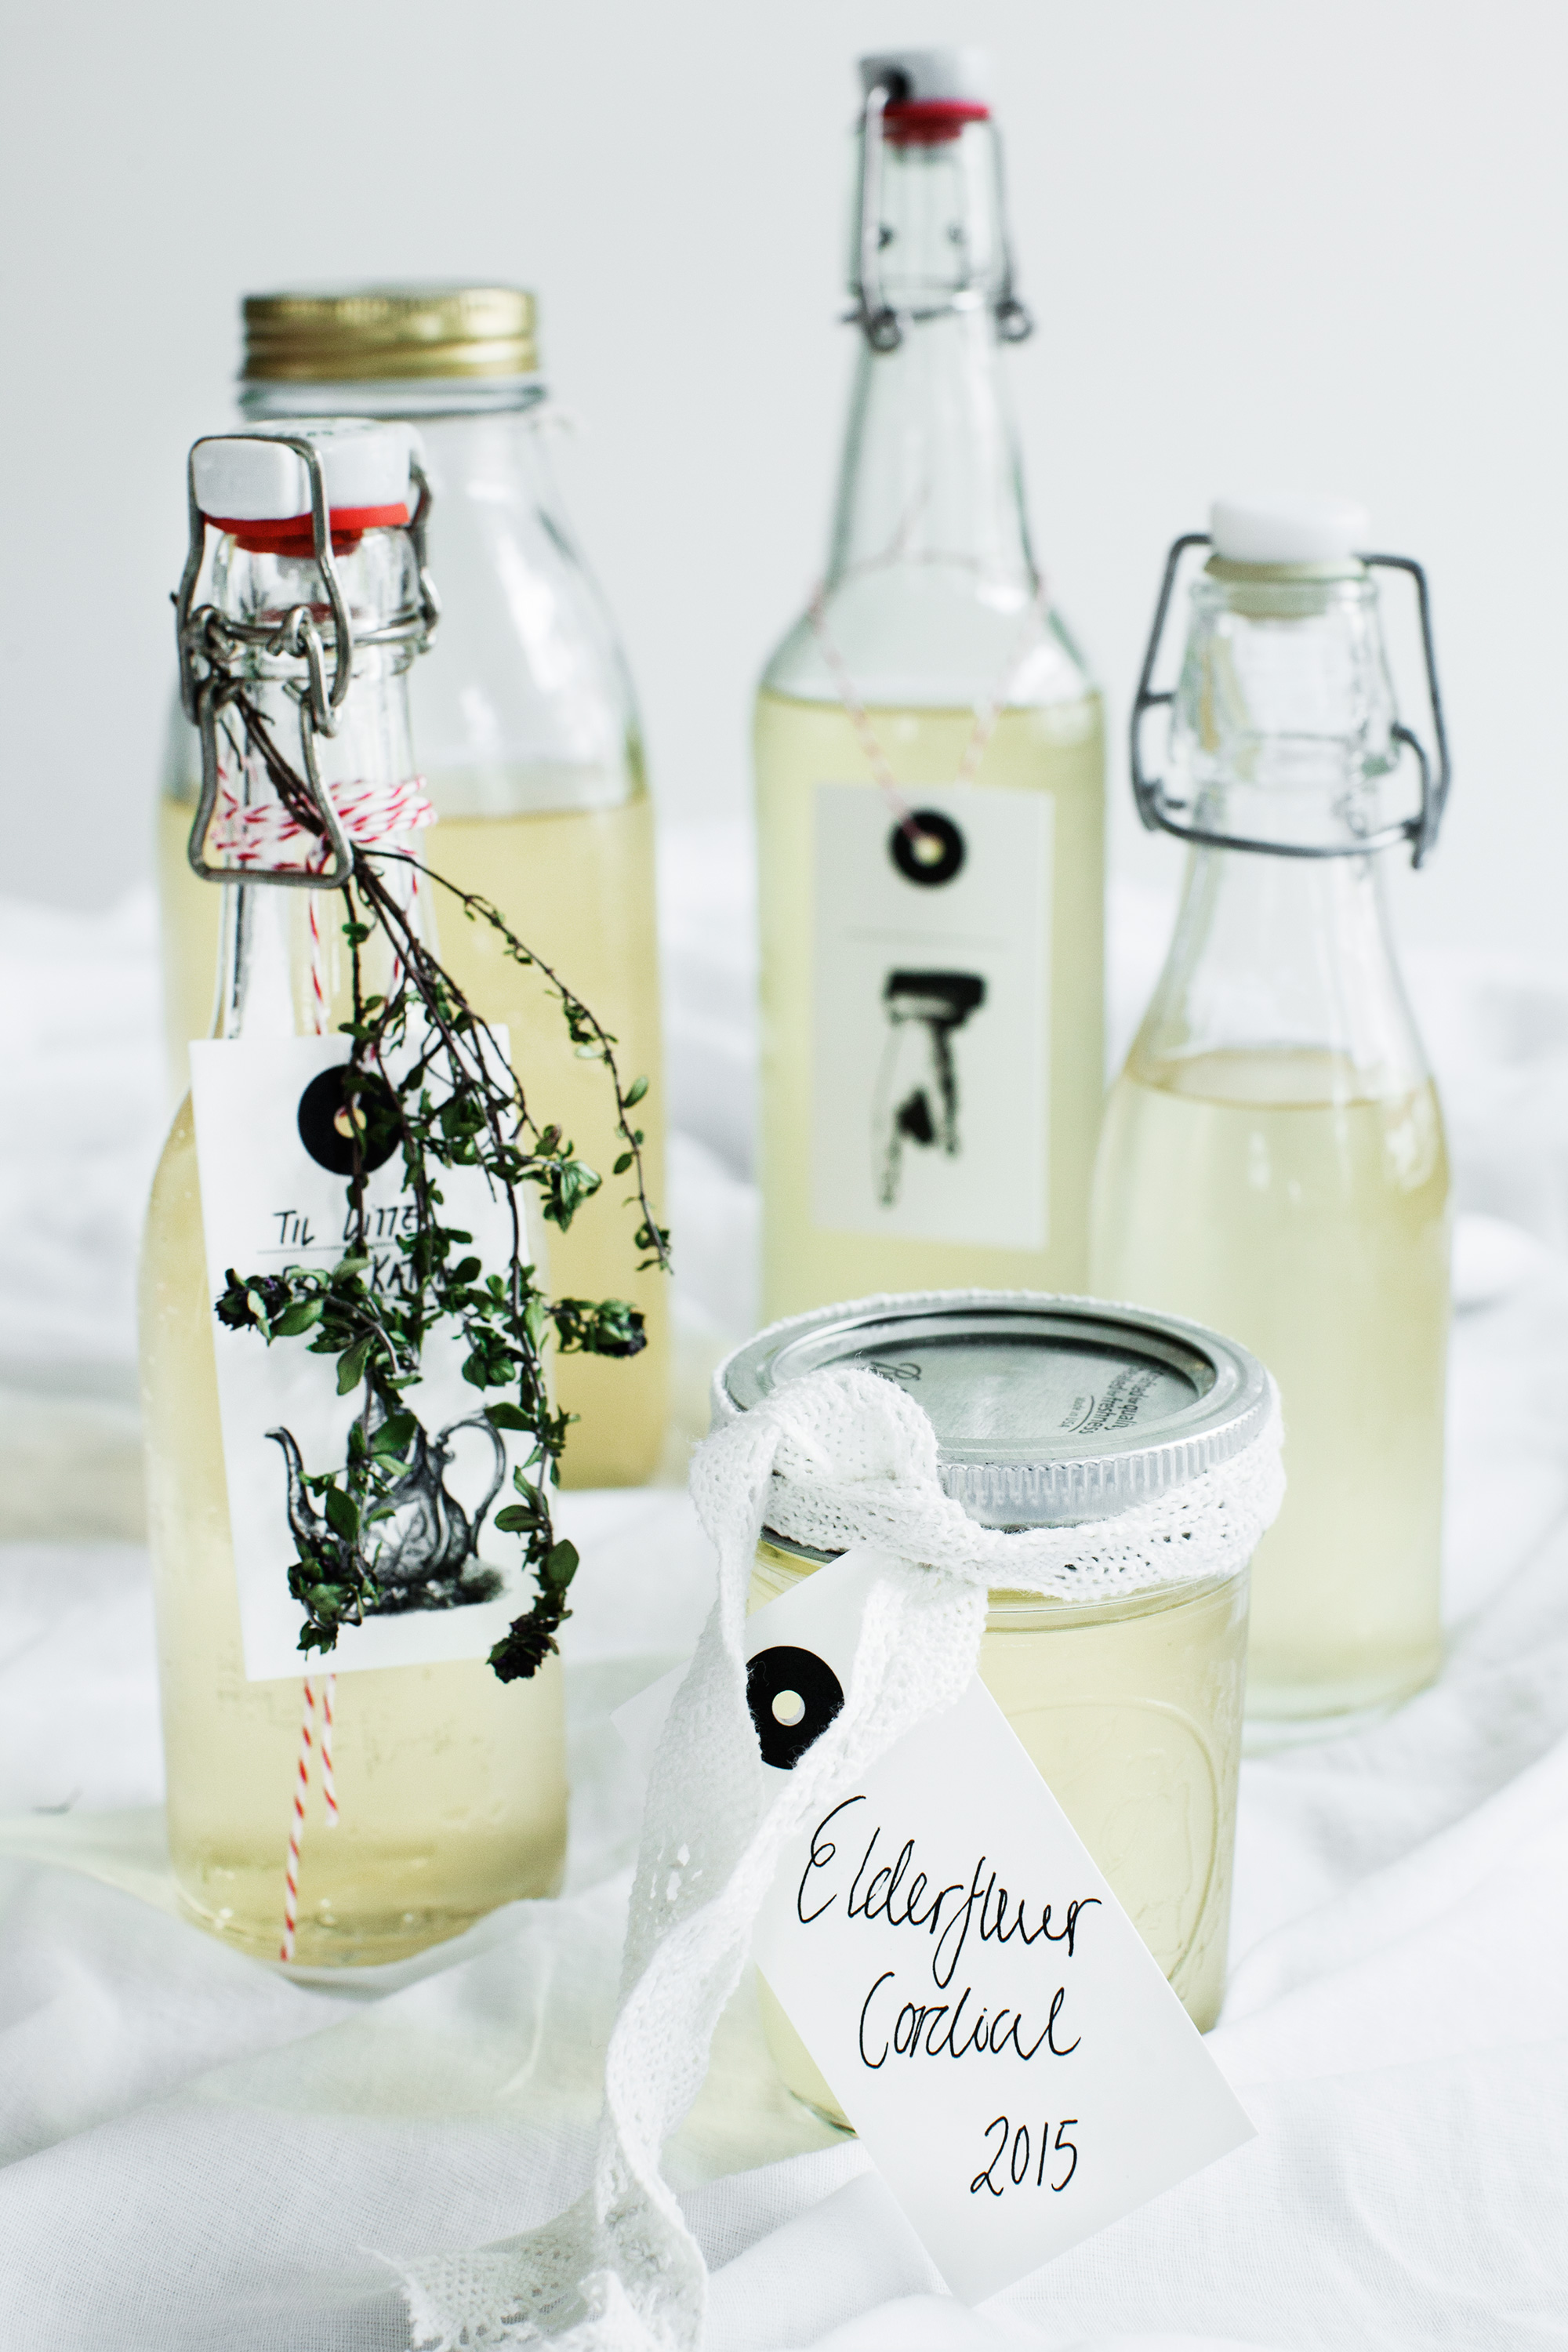 Elderflower Cordial Recipe #summer #modernwifestyle